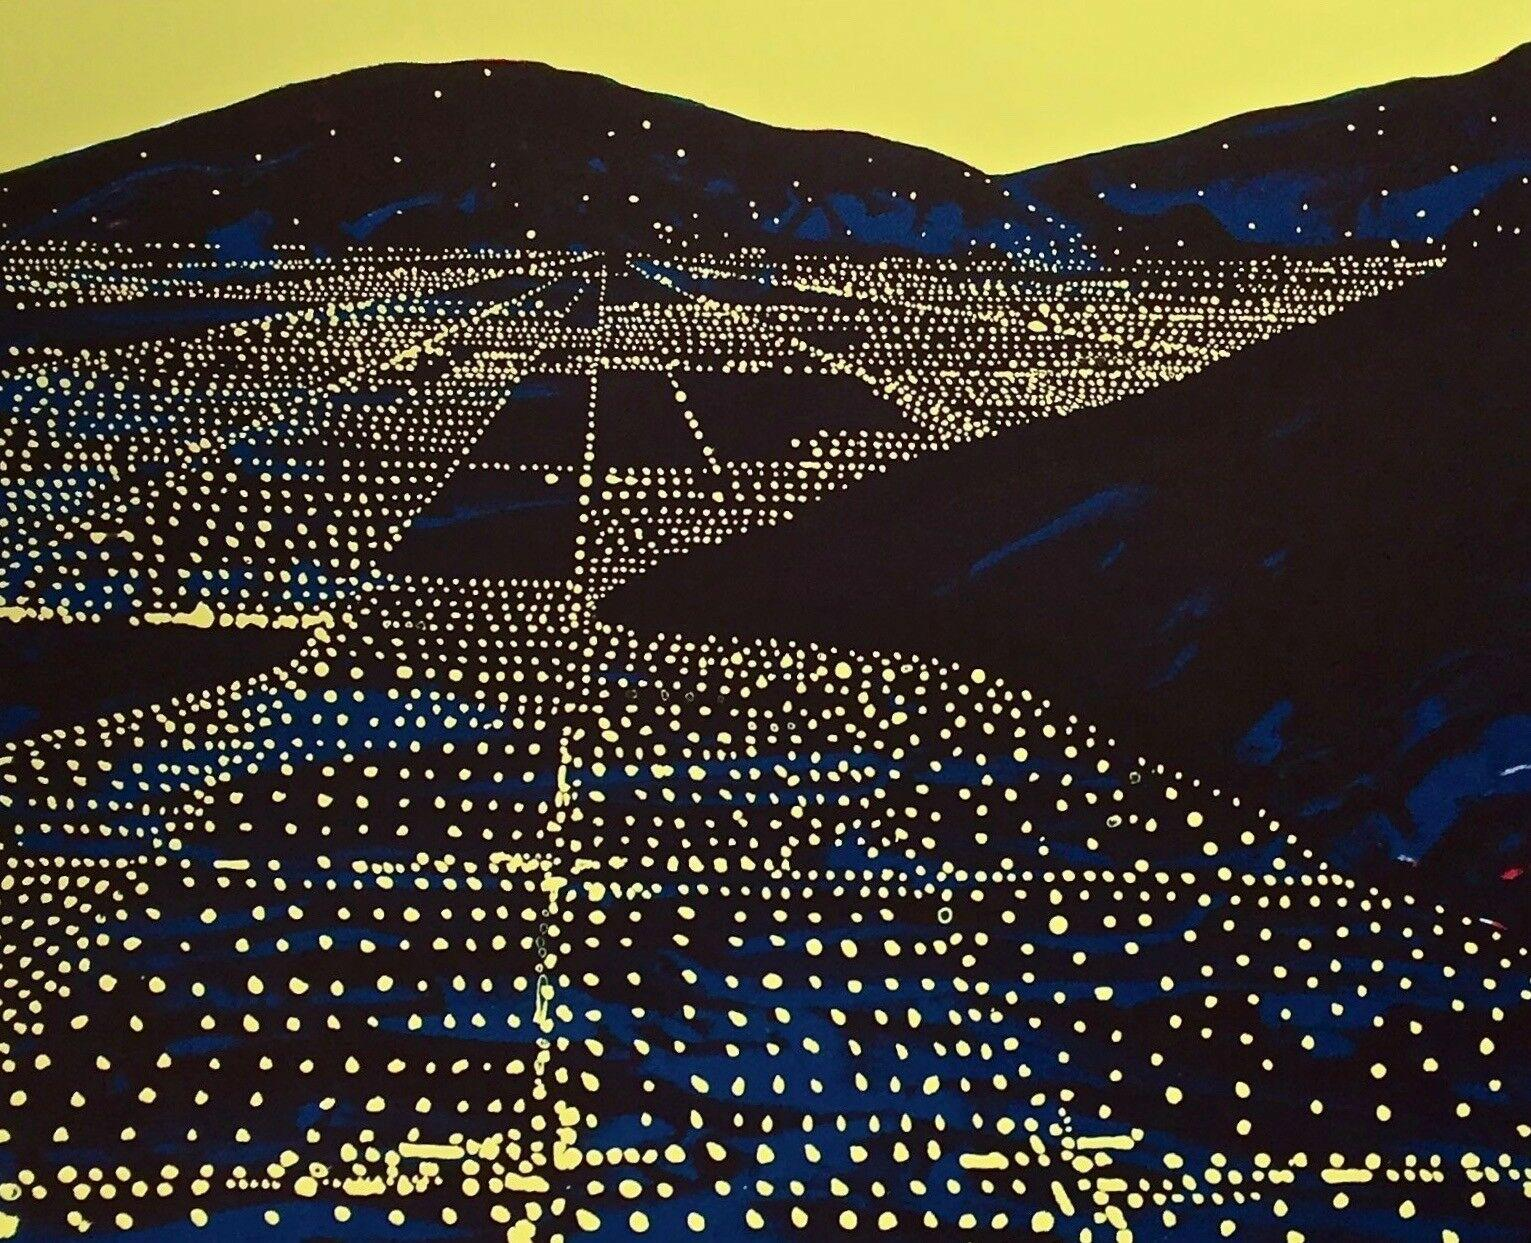 Hallelujah II, 1988 Limited Edition Lithograph, Peter Alexander